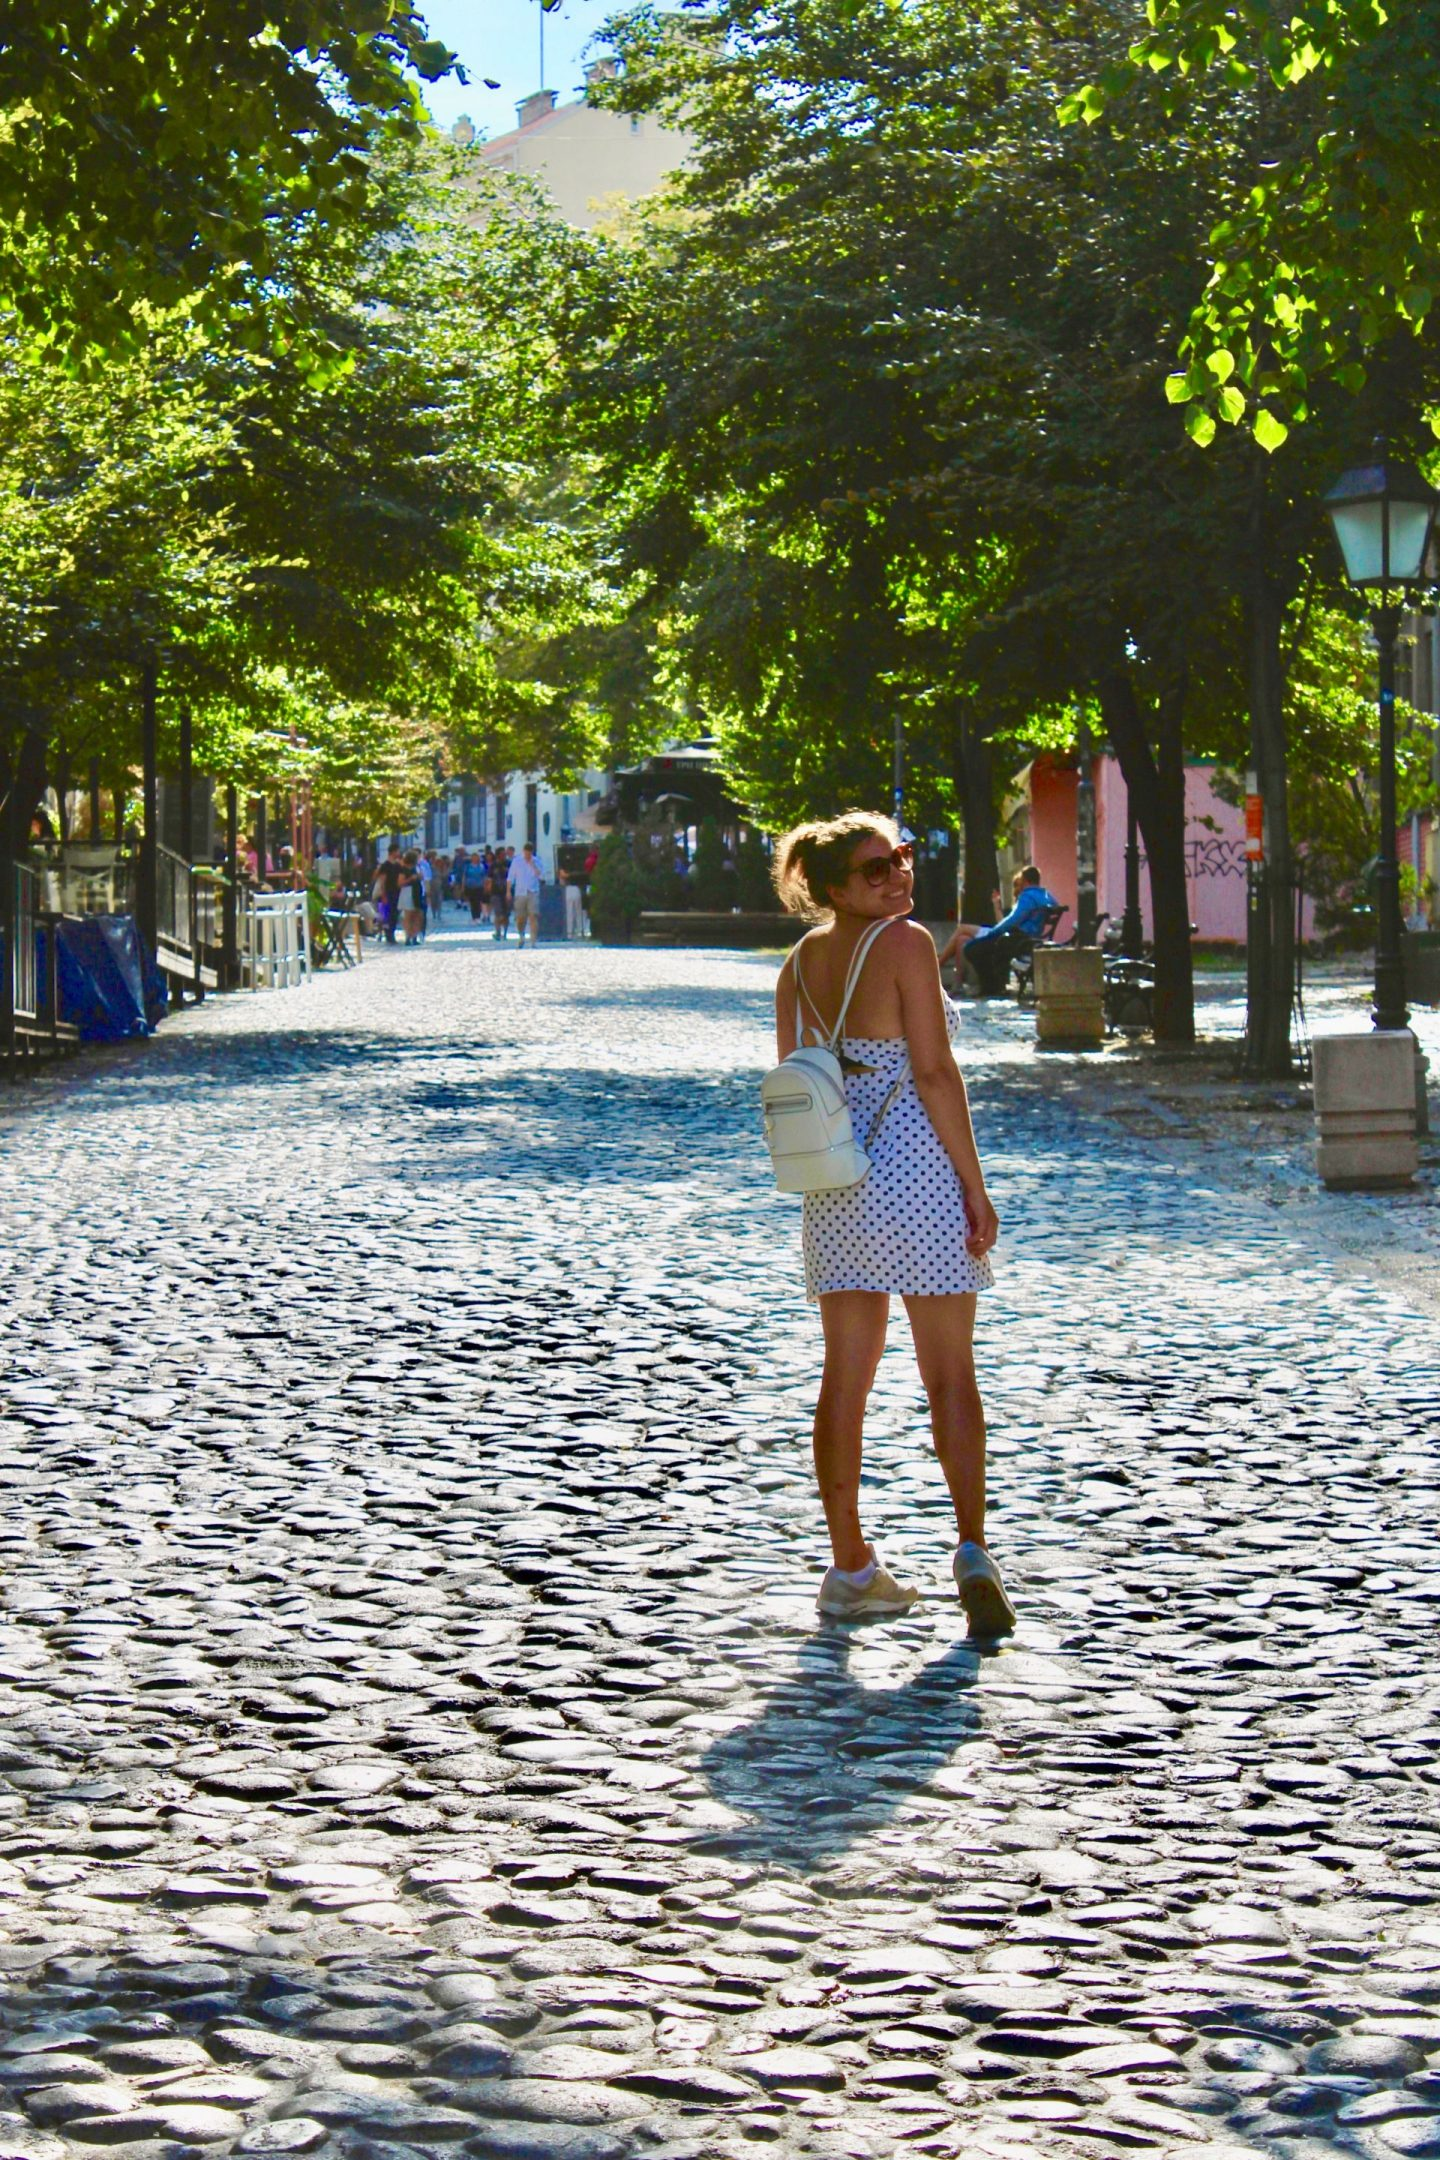 Girl in polkadot dress on a cobbled street, walking away from the camera but turning back to smile at it